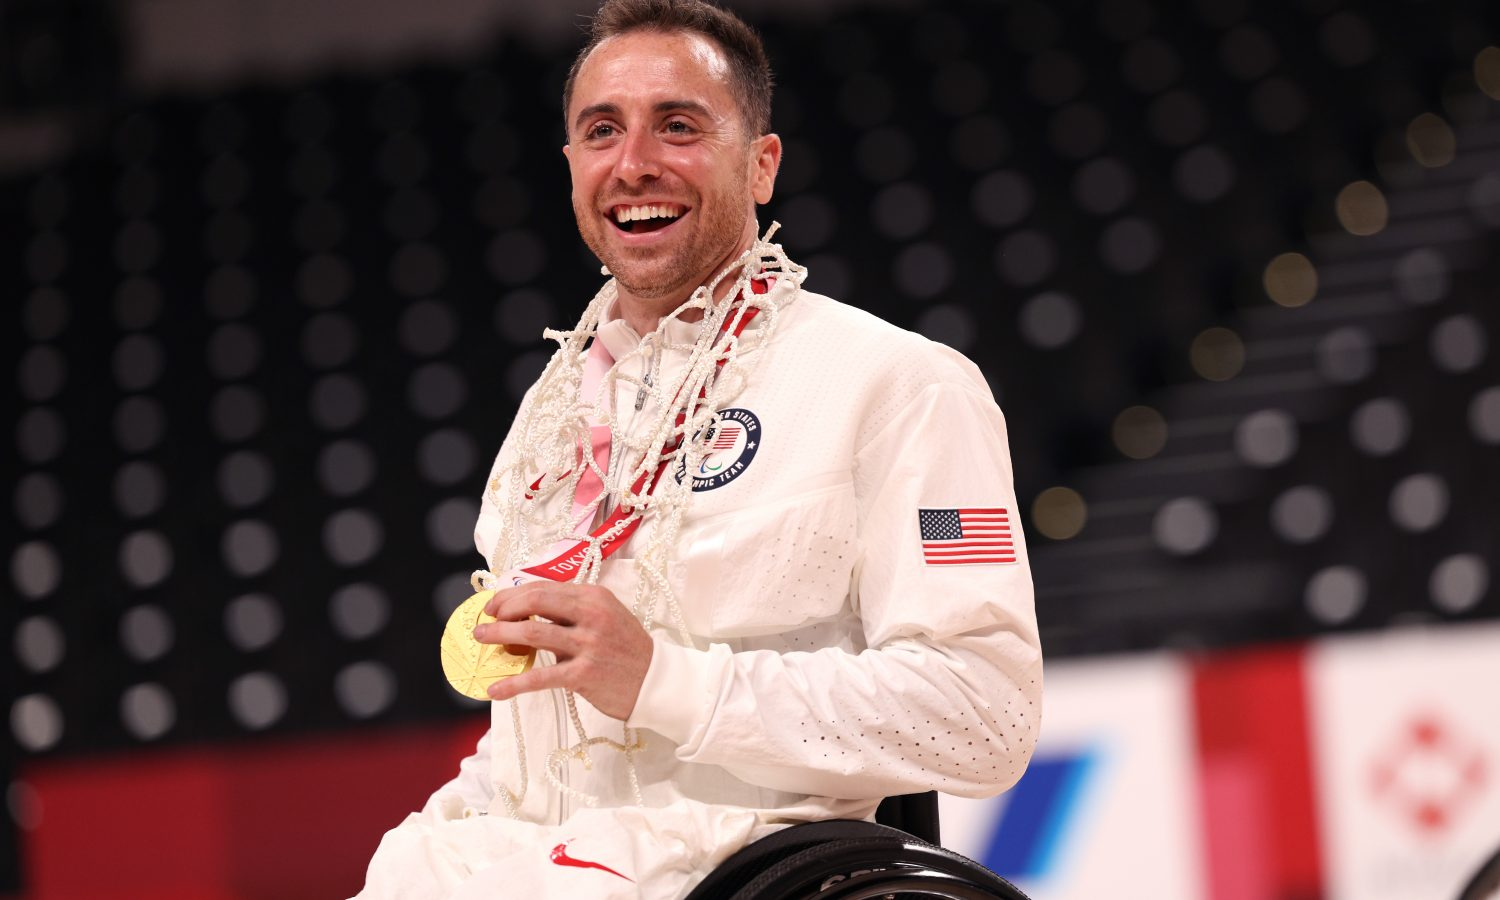 Team USA, Team Toyota's Steve Serio Wins Third Paralympic Medal at Tokyo 2020